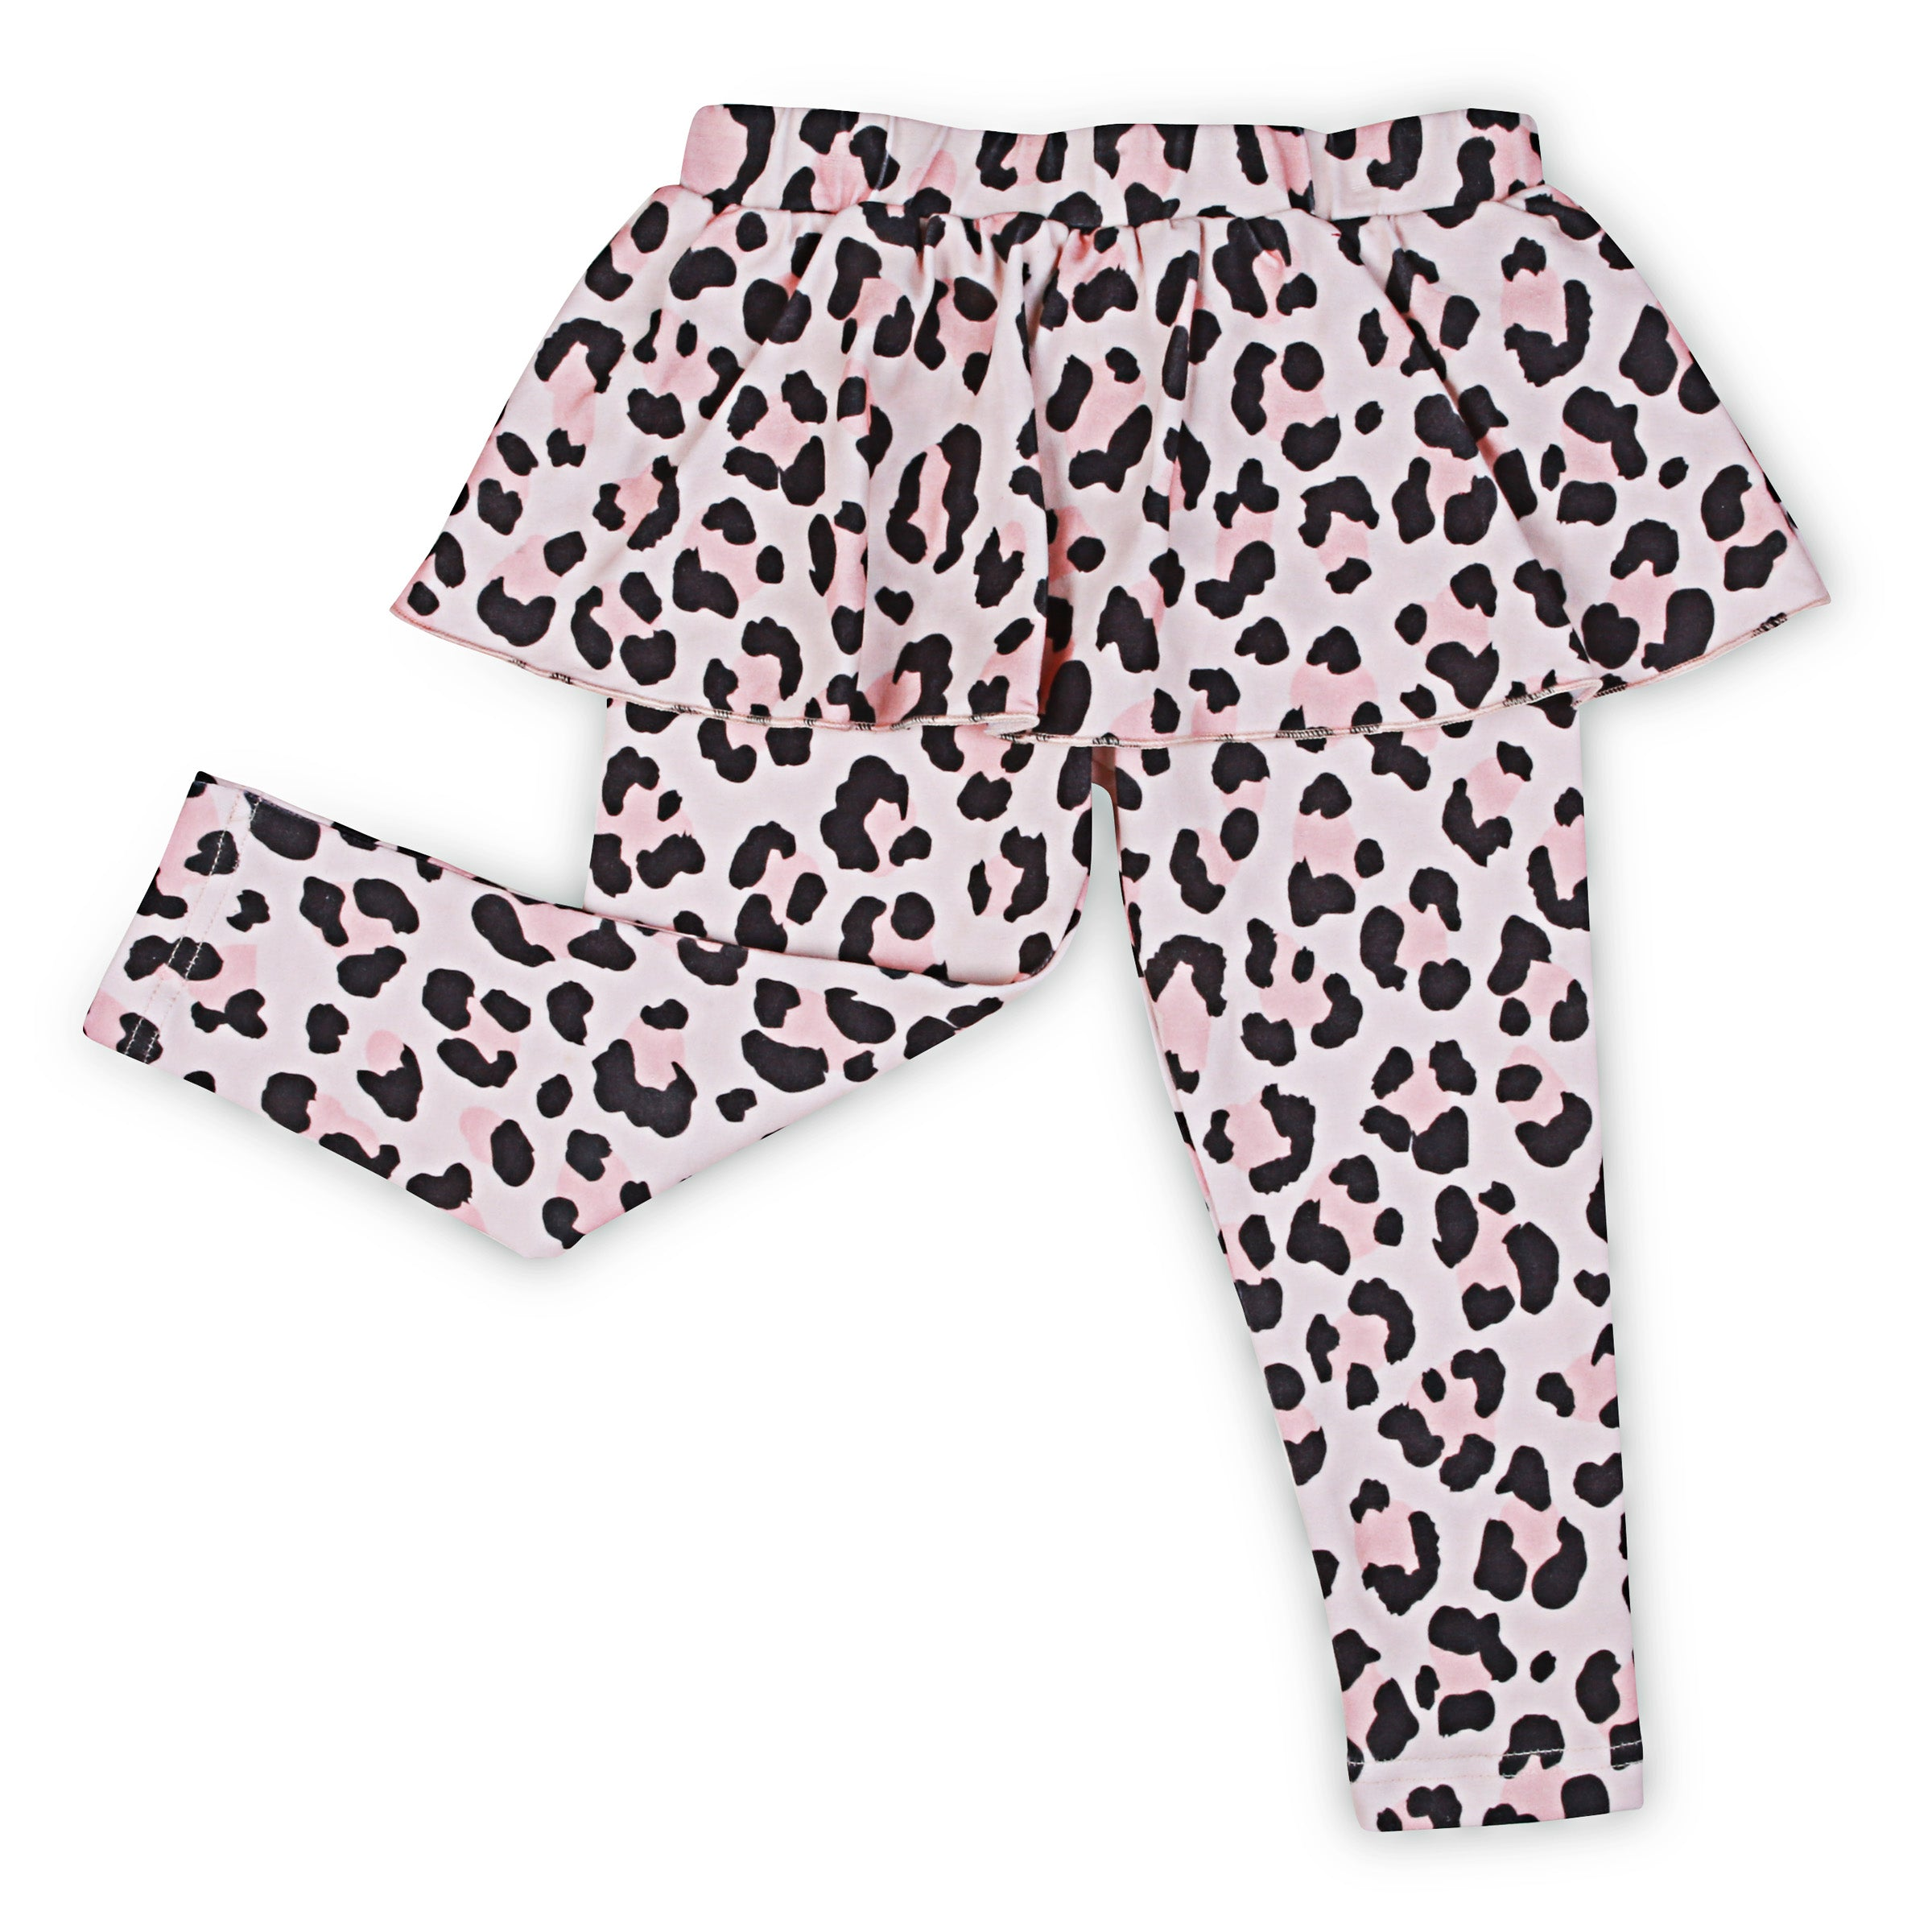 Kapow Cheetah Skeggings Apricot